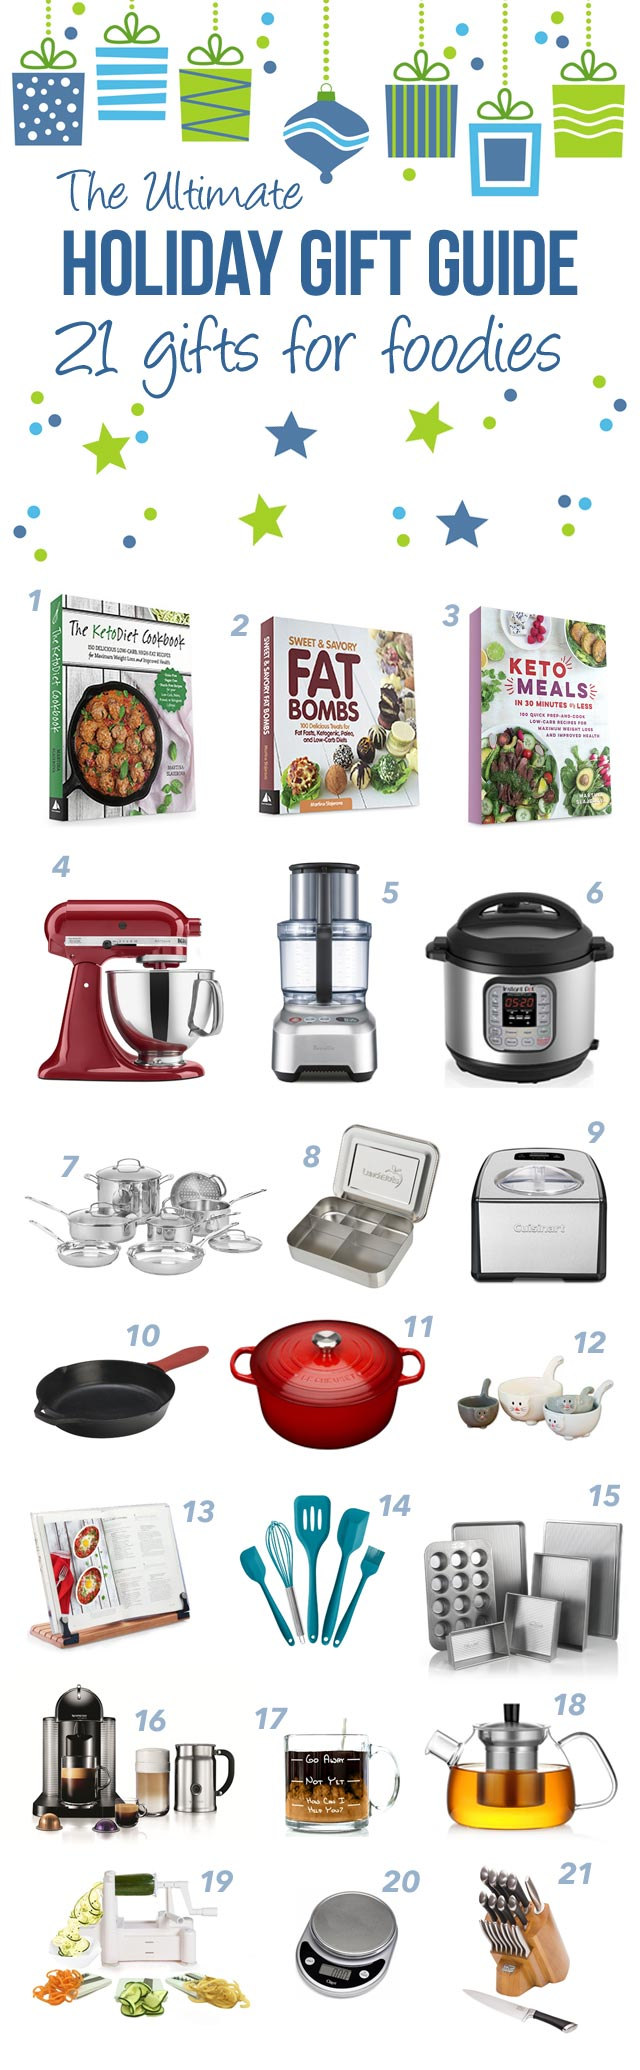 |Holiday Gift Guide for Foodies